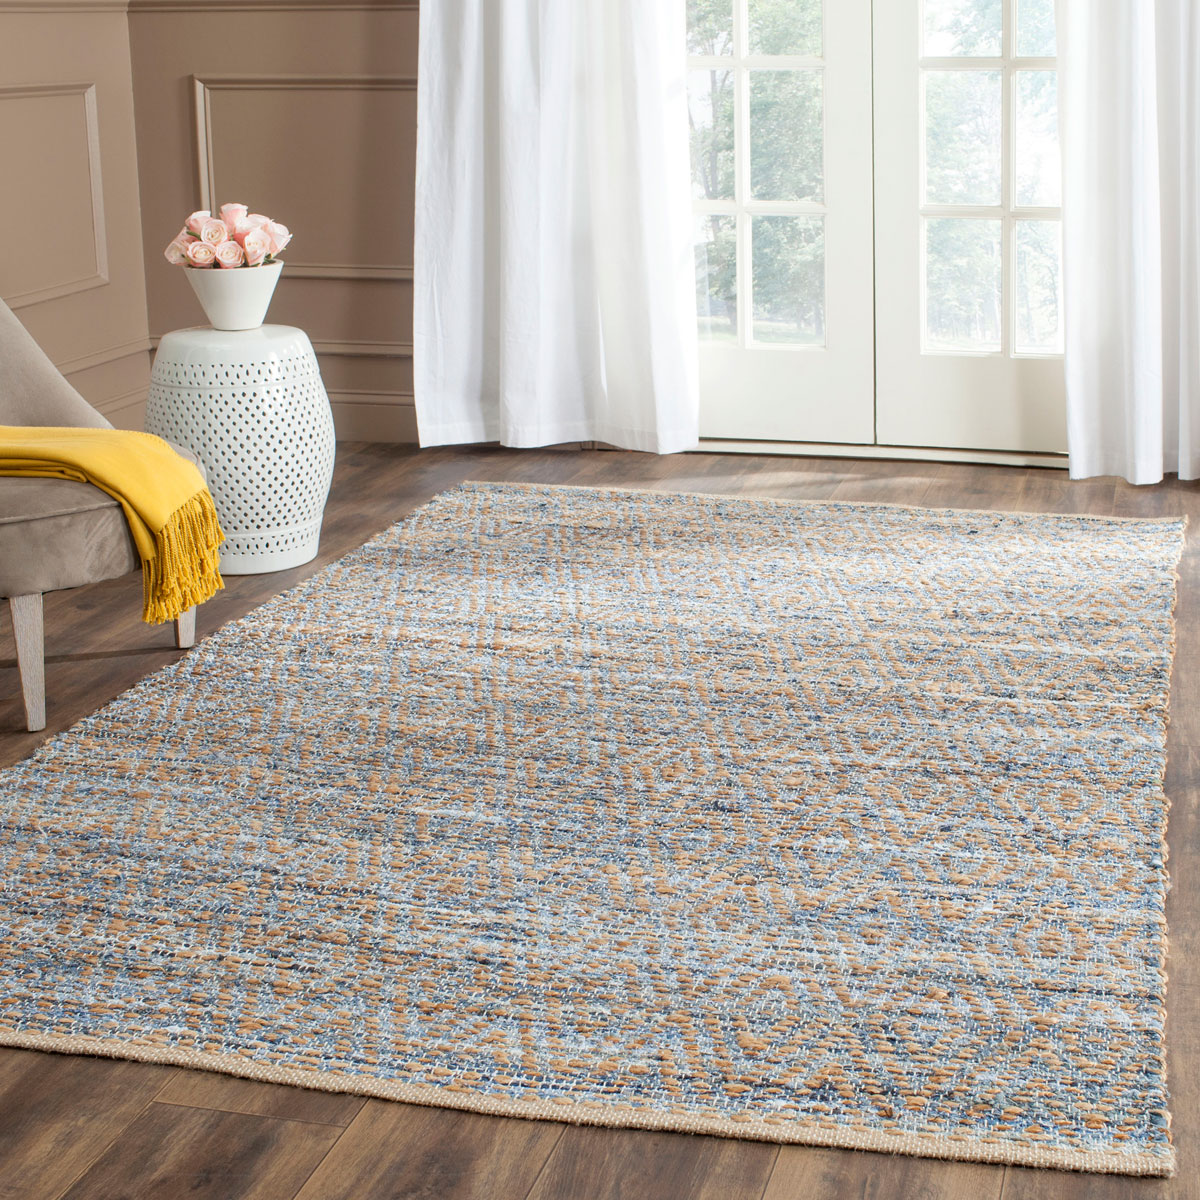 Washable Jute Rugs: Cape Cod Area Rugs By Safavieh